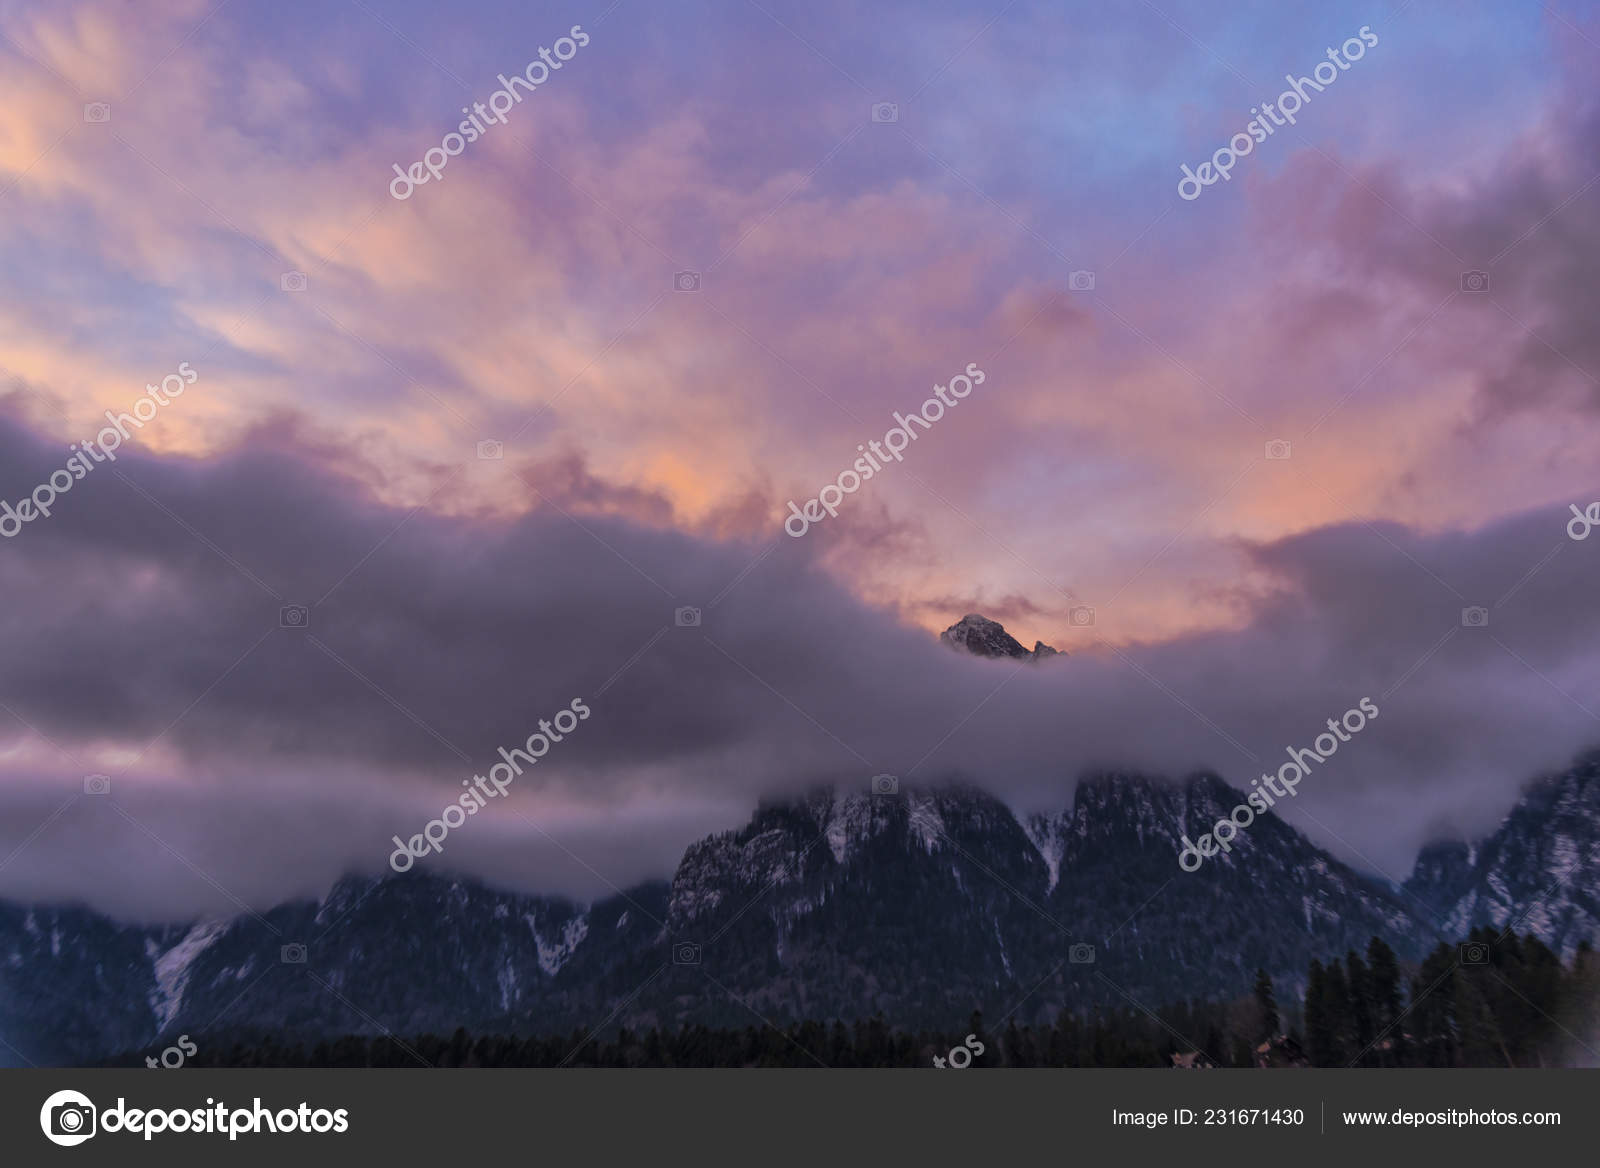 Majestic Purple Sunset Sunrise Sky Mountains Clouds Stock Photo C Somra Stefan Gmail Com 231671430